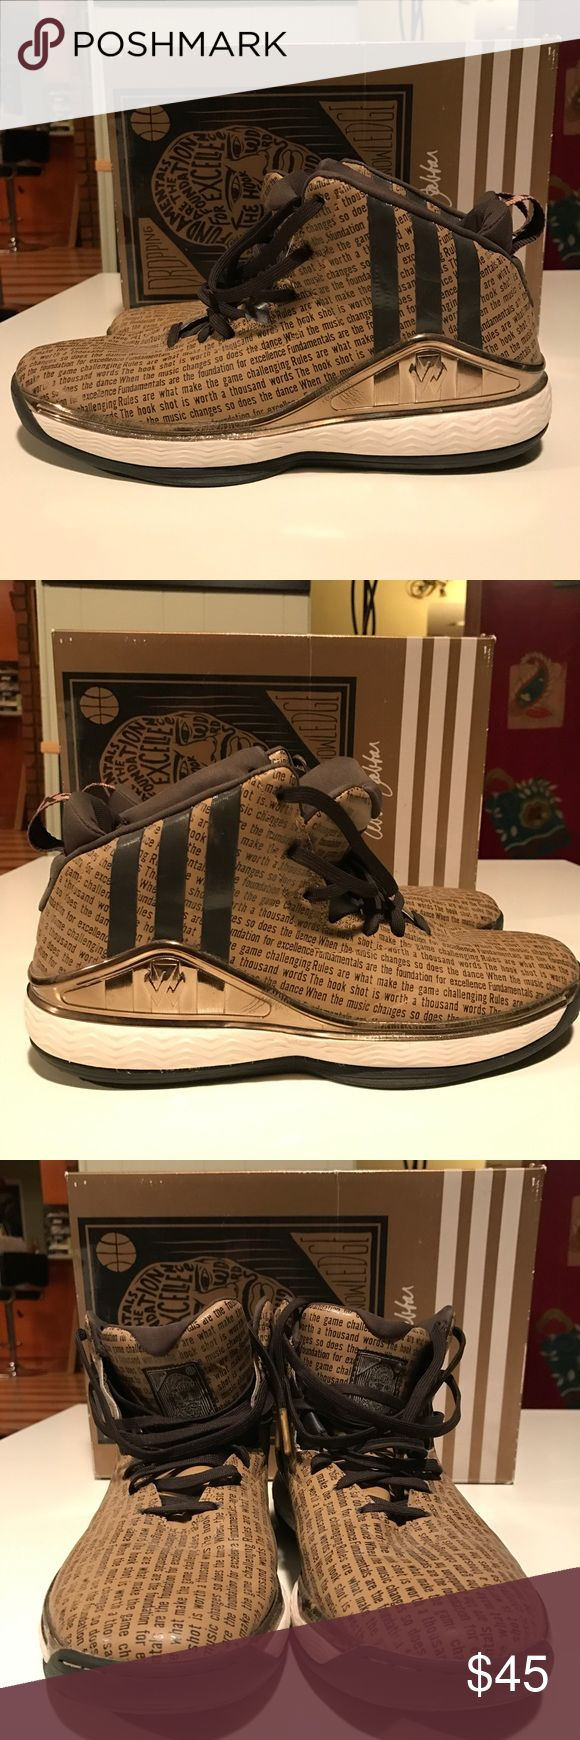 John Wall 1 BHM Size 9.5 9/10 Condition, great shoe to hoop in. Comes with Box. adidas Shoes Athletic Shoes